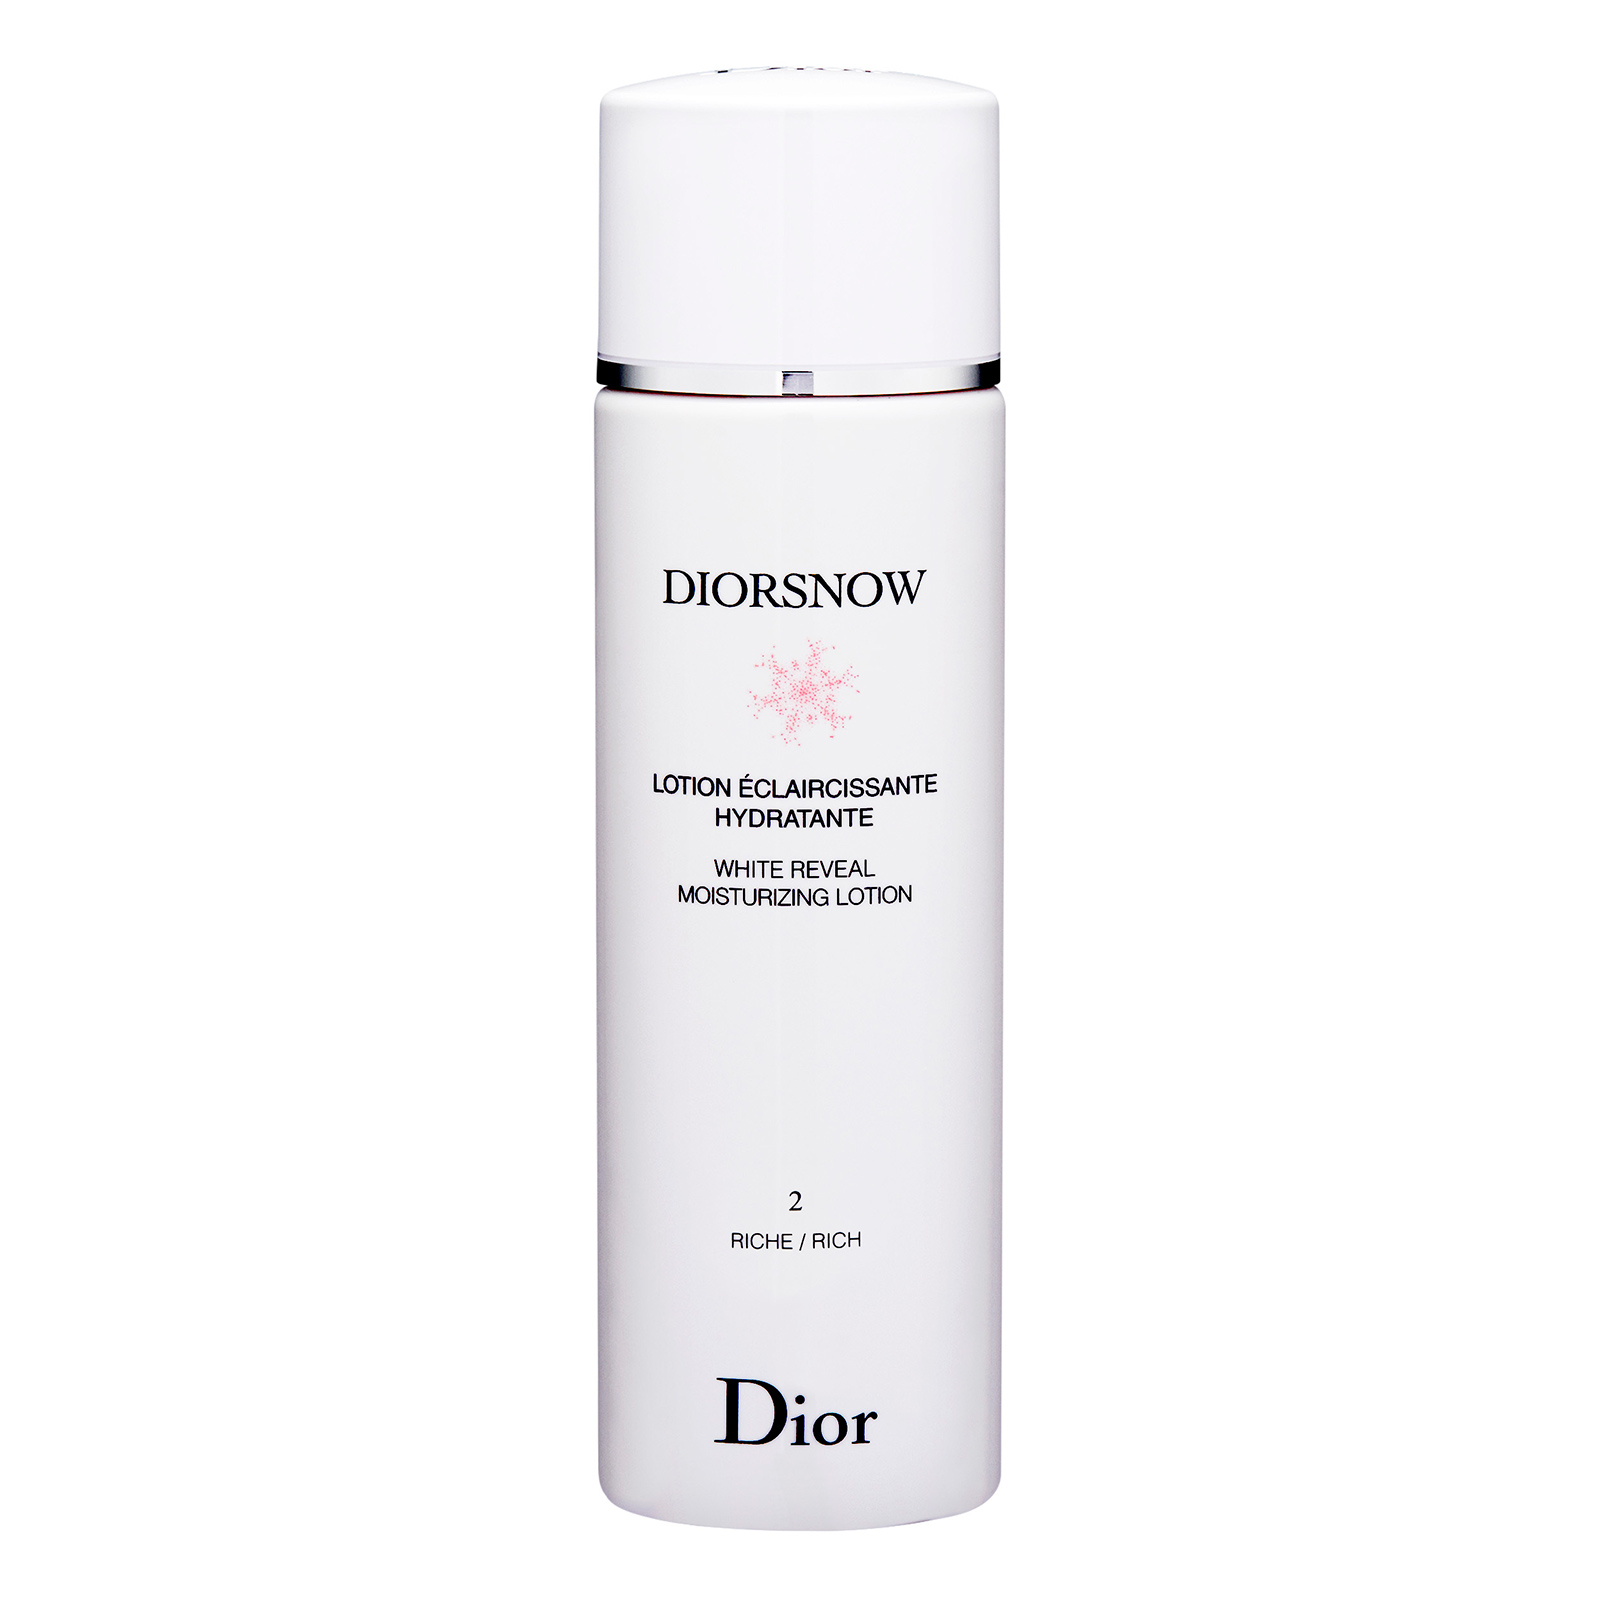 Christian Dior DiorSnow White Reveal Moisturizing Lotion (With Icelandic Glacial™ Water) 2 Rich 滋潤, 6.7oz, 200ml